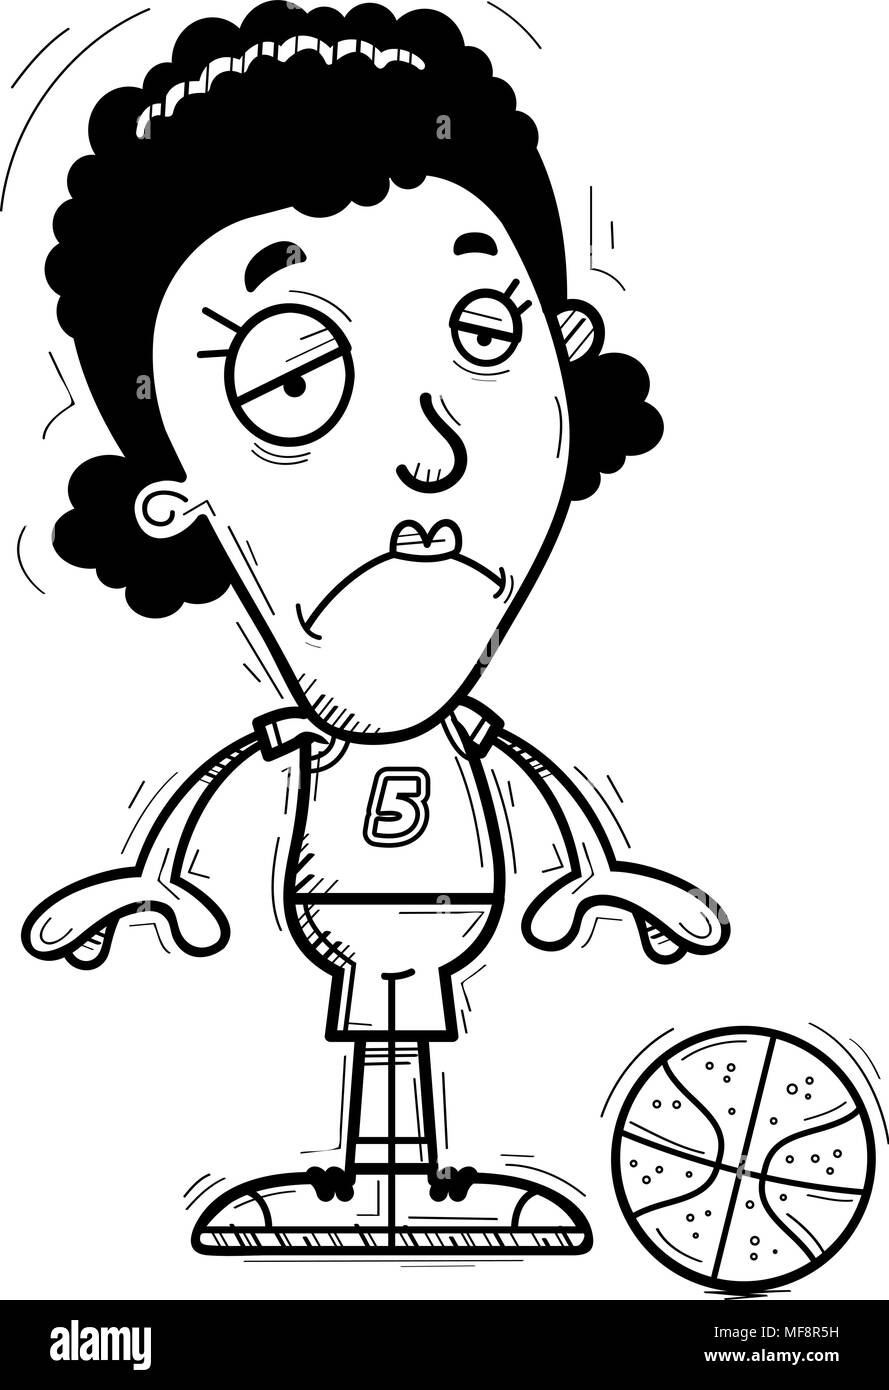 A cartoon illustration of a black woman basketball player looking sad. - Stock Image